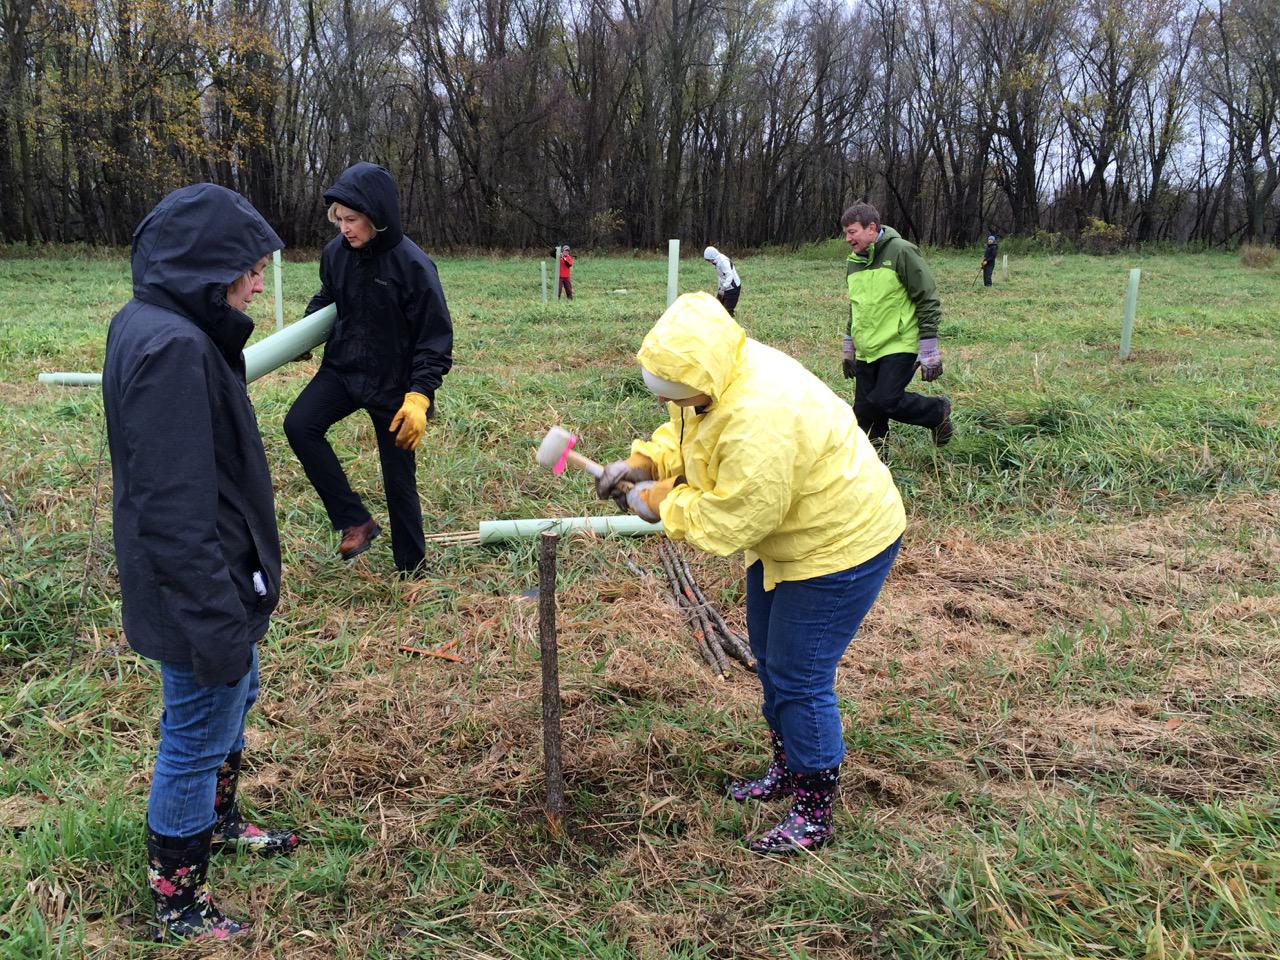 Installing cottonwood live stakes in the floodplain forest near Hastings